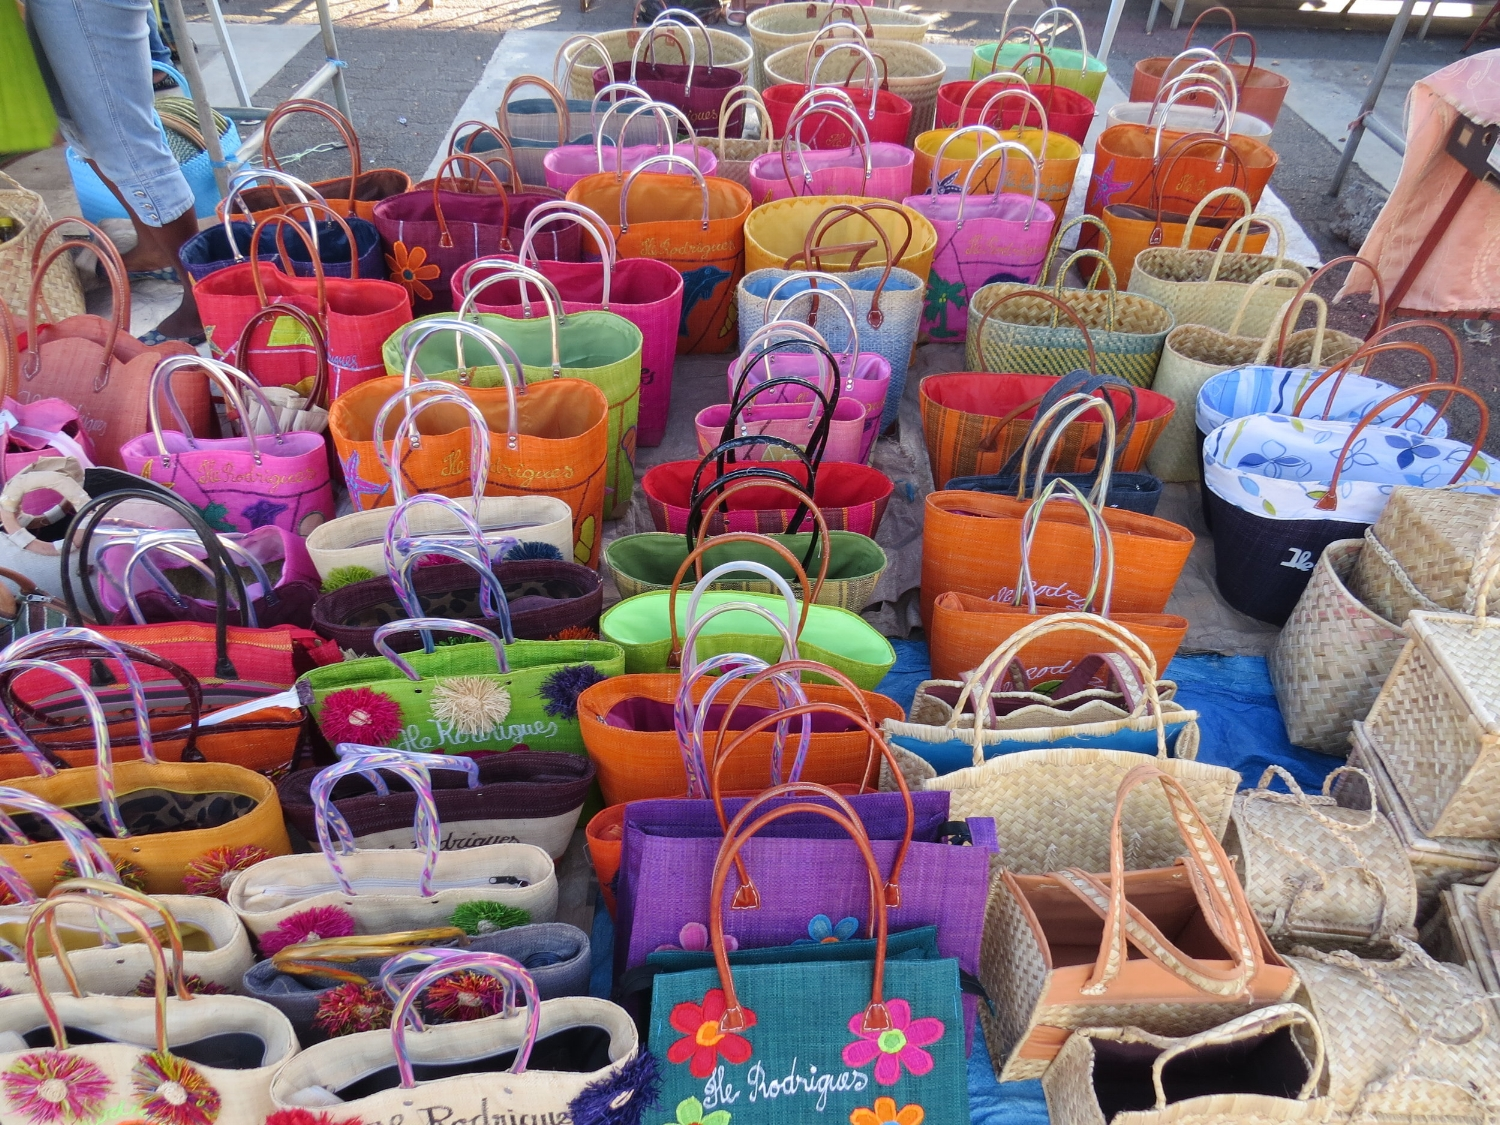 Colorful Rodrigues baskets